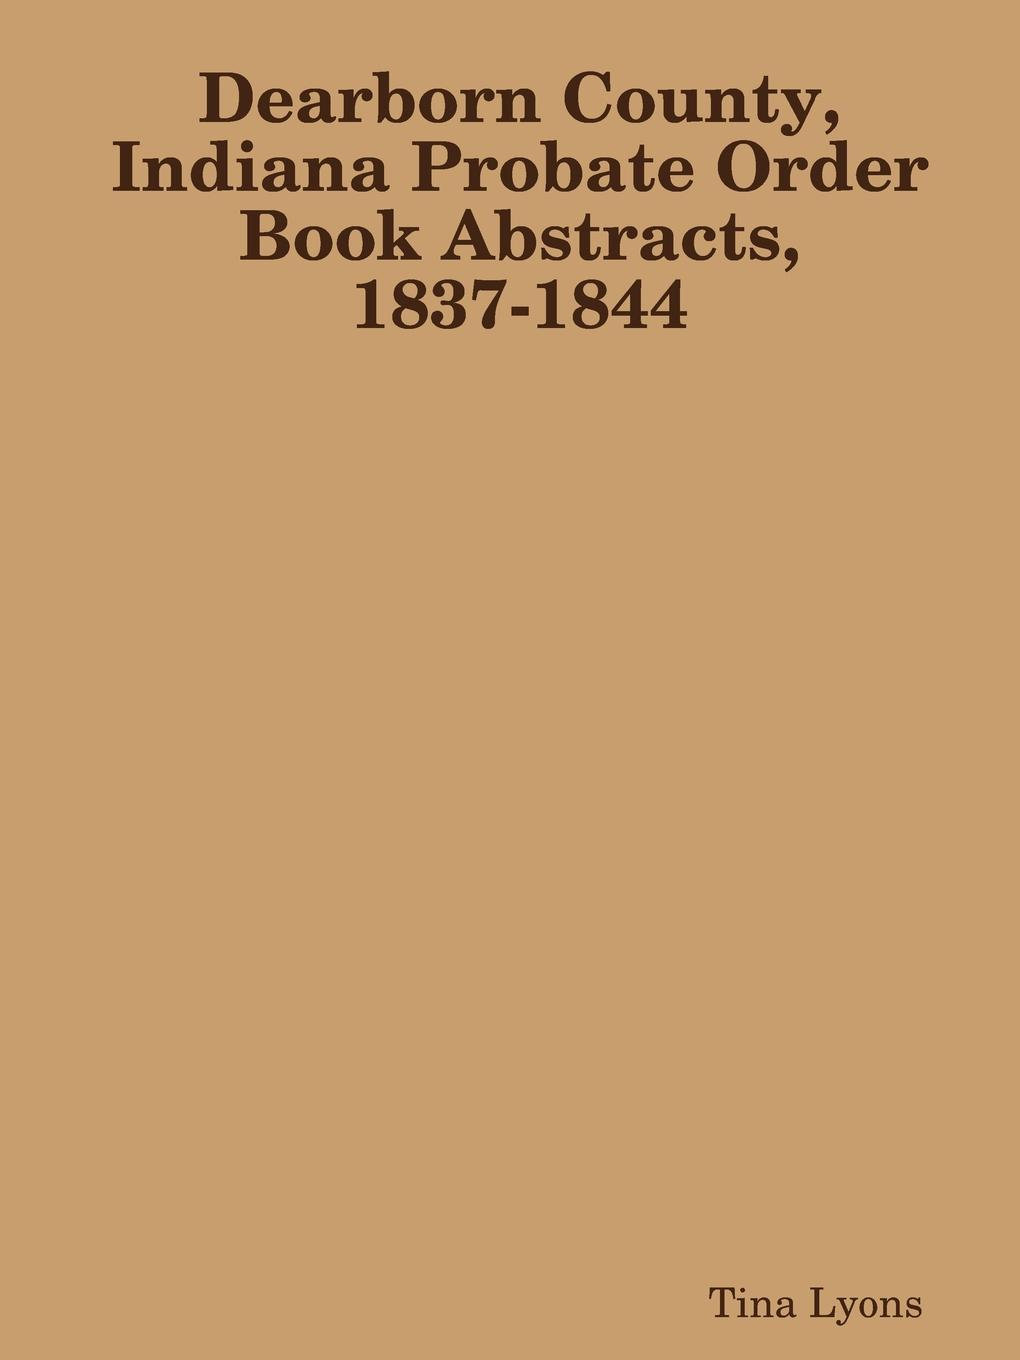 Tina Lyons Dearborn County, Indiana Probate Order Book Abstracts, 1837-1844 russell fishkind j aarp probate wars of the rich and famous an insider s guide to estate and probate litigation